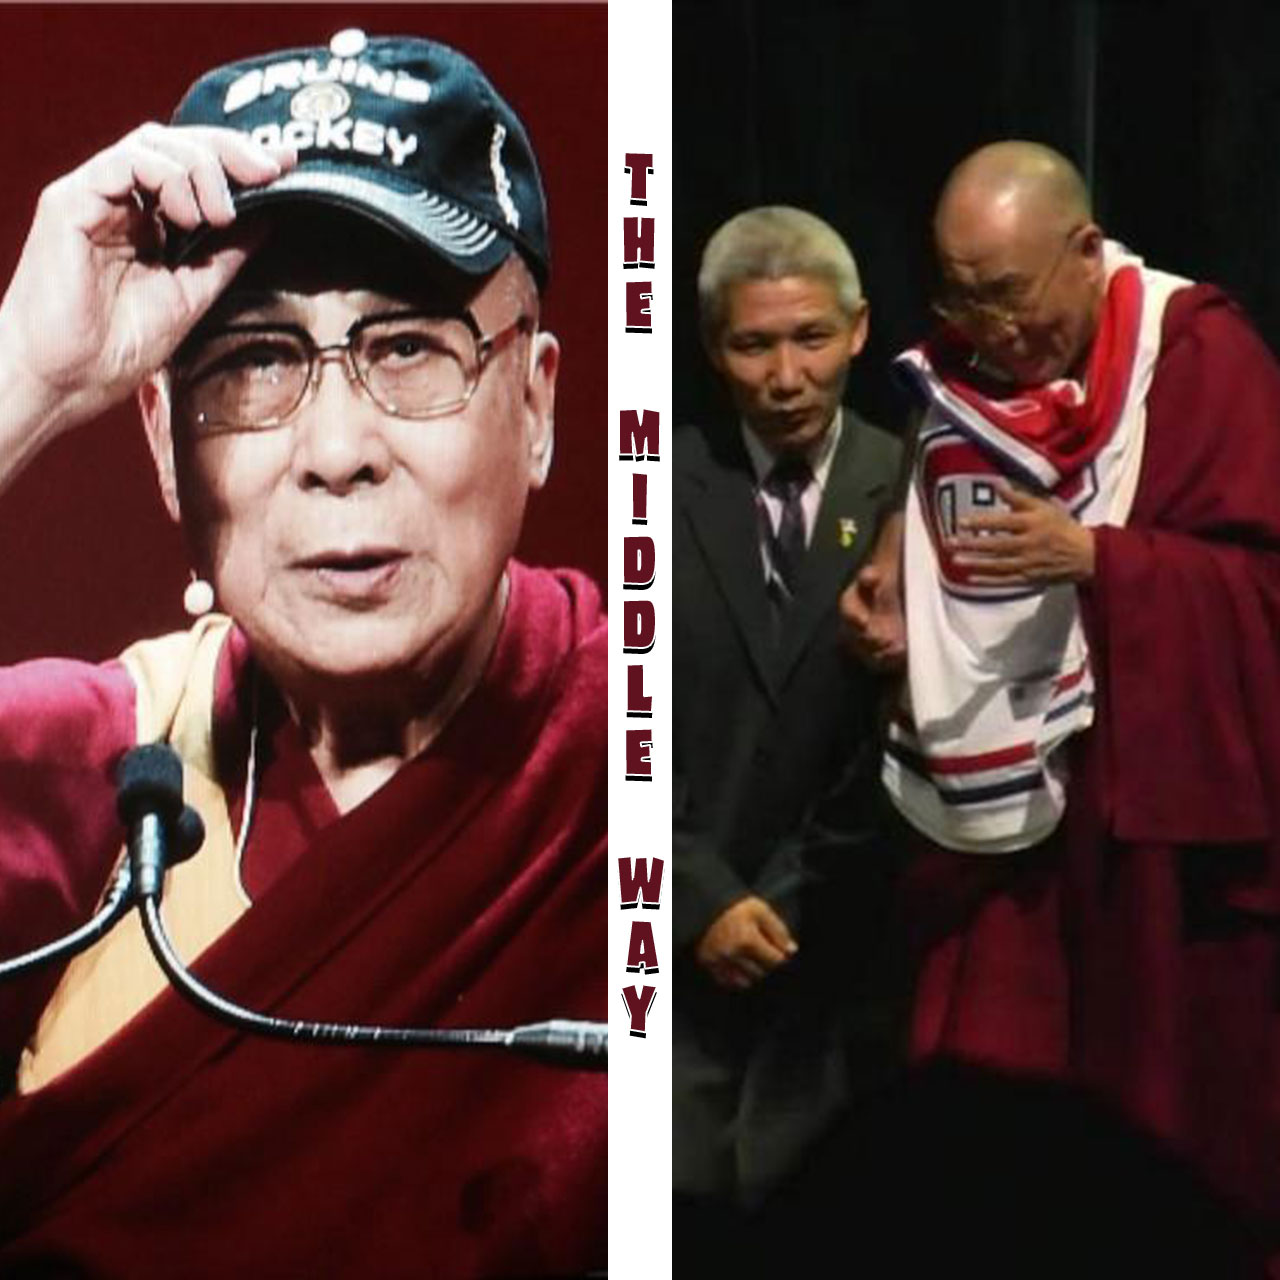 Dalai Lama opts for the Middle Way with Bruins and Habs